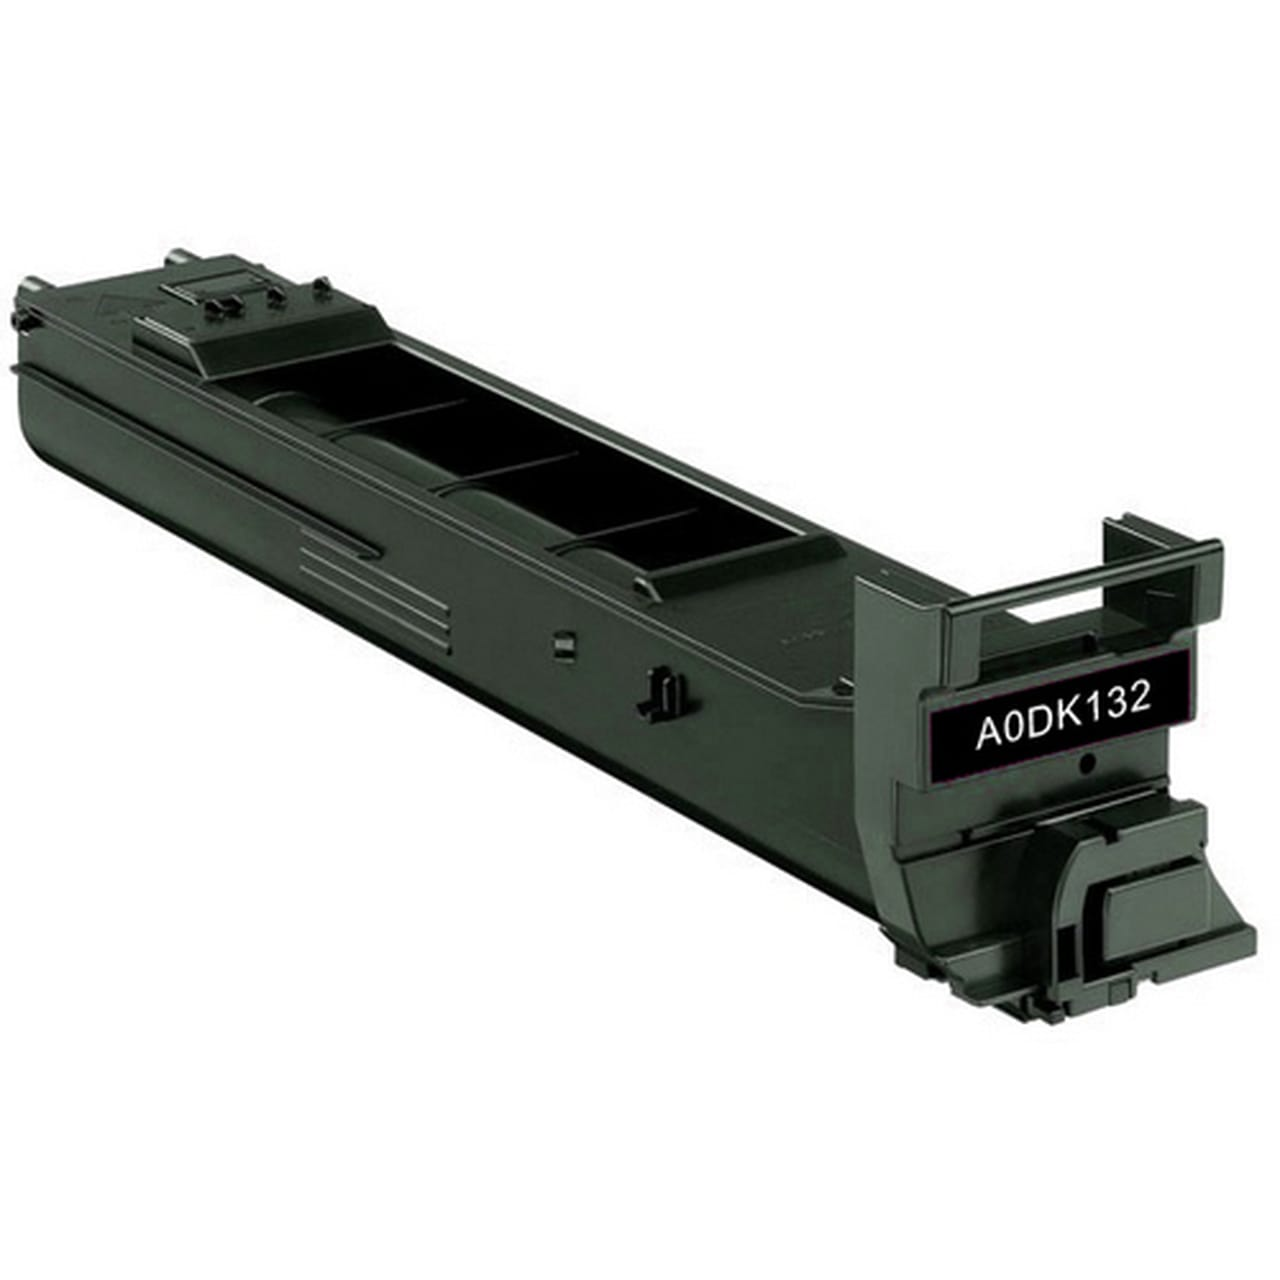 A0DK132 Toner Cartridge - Konica-Minolta Remanufactured (Black)